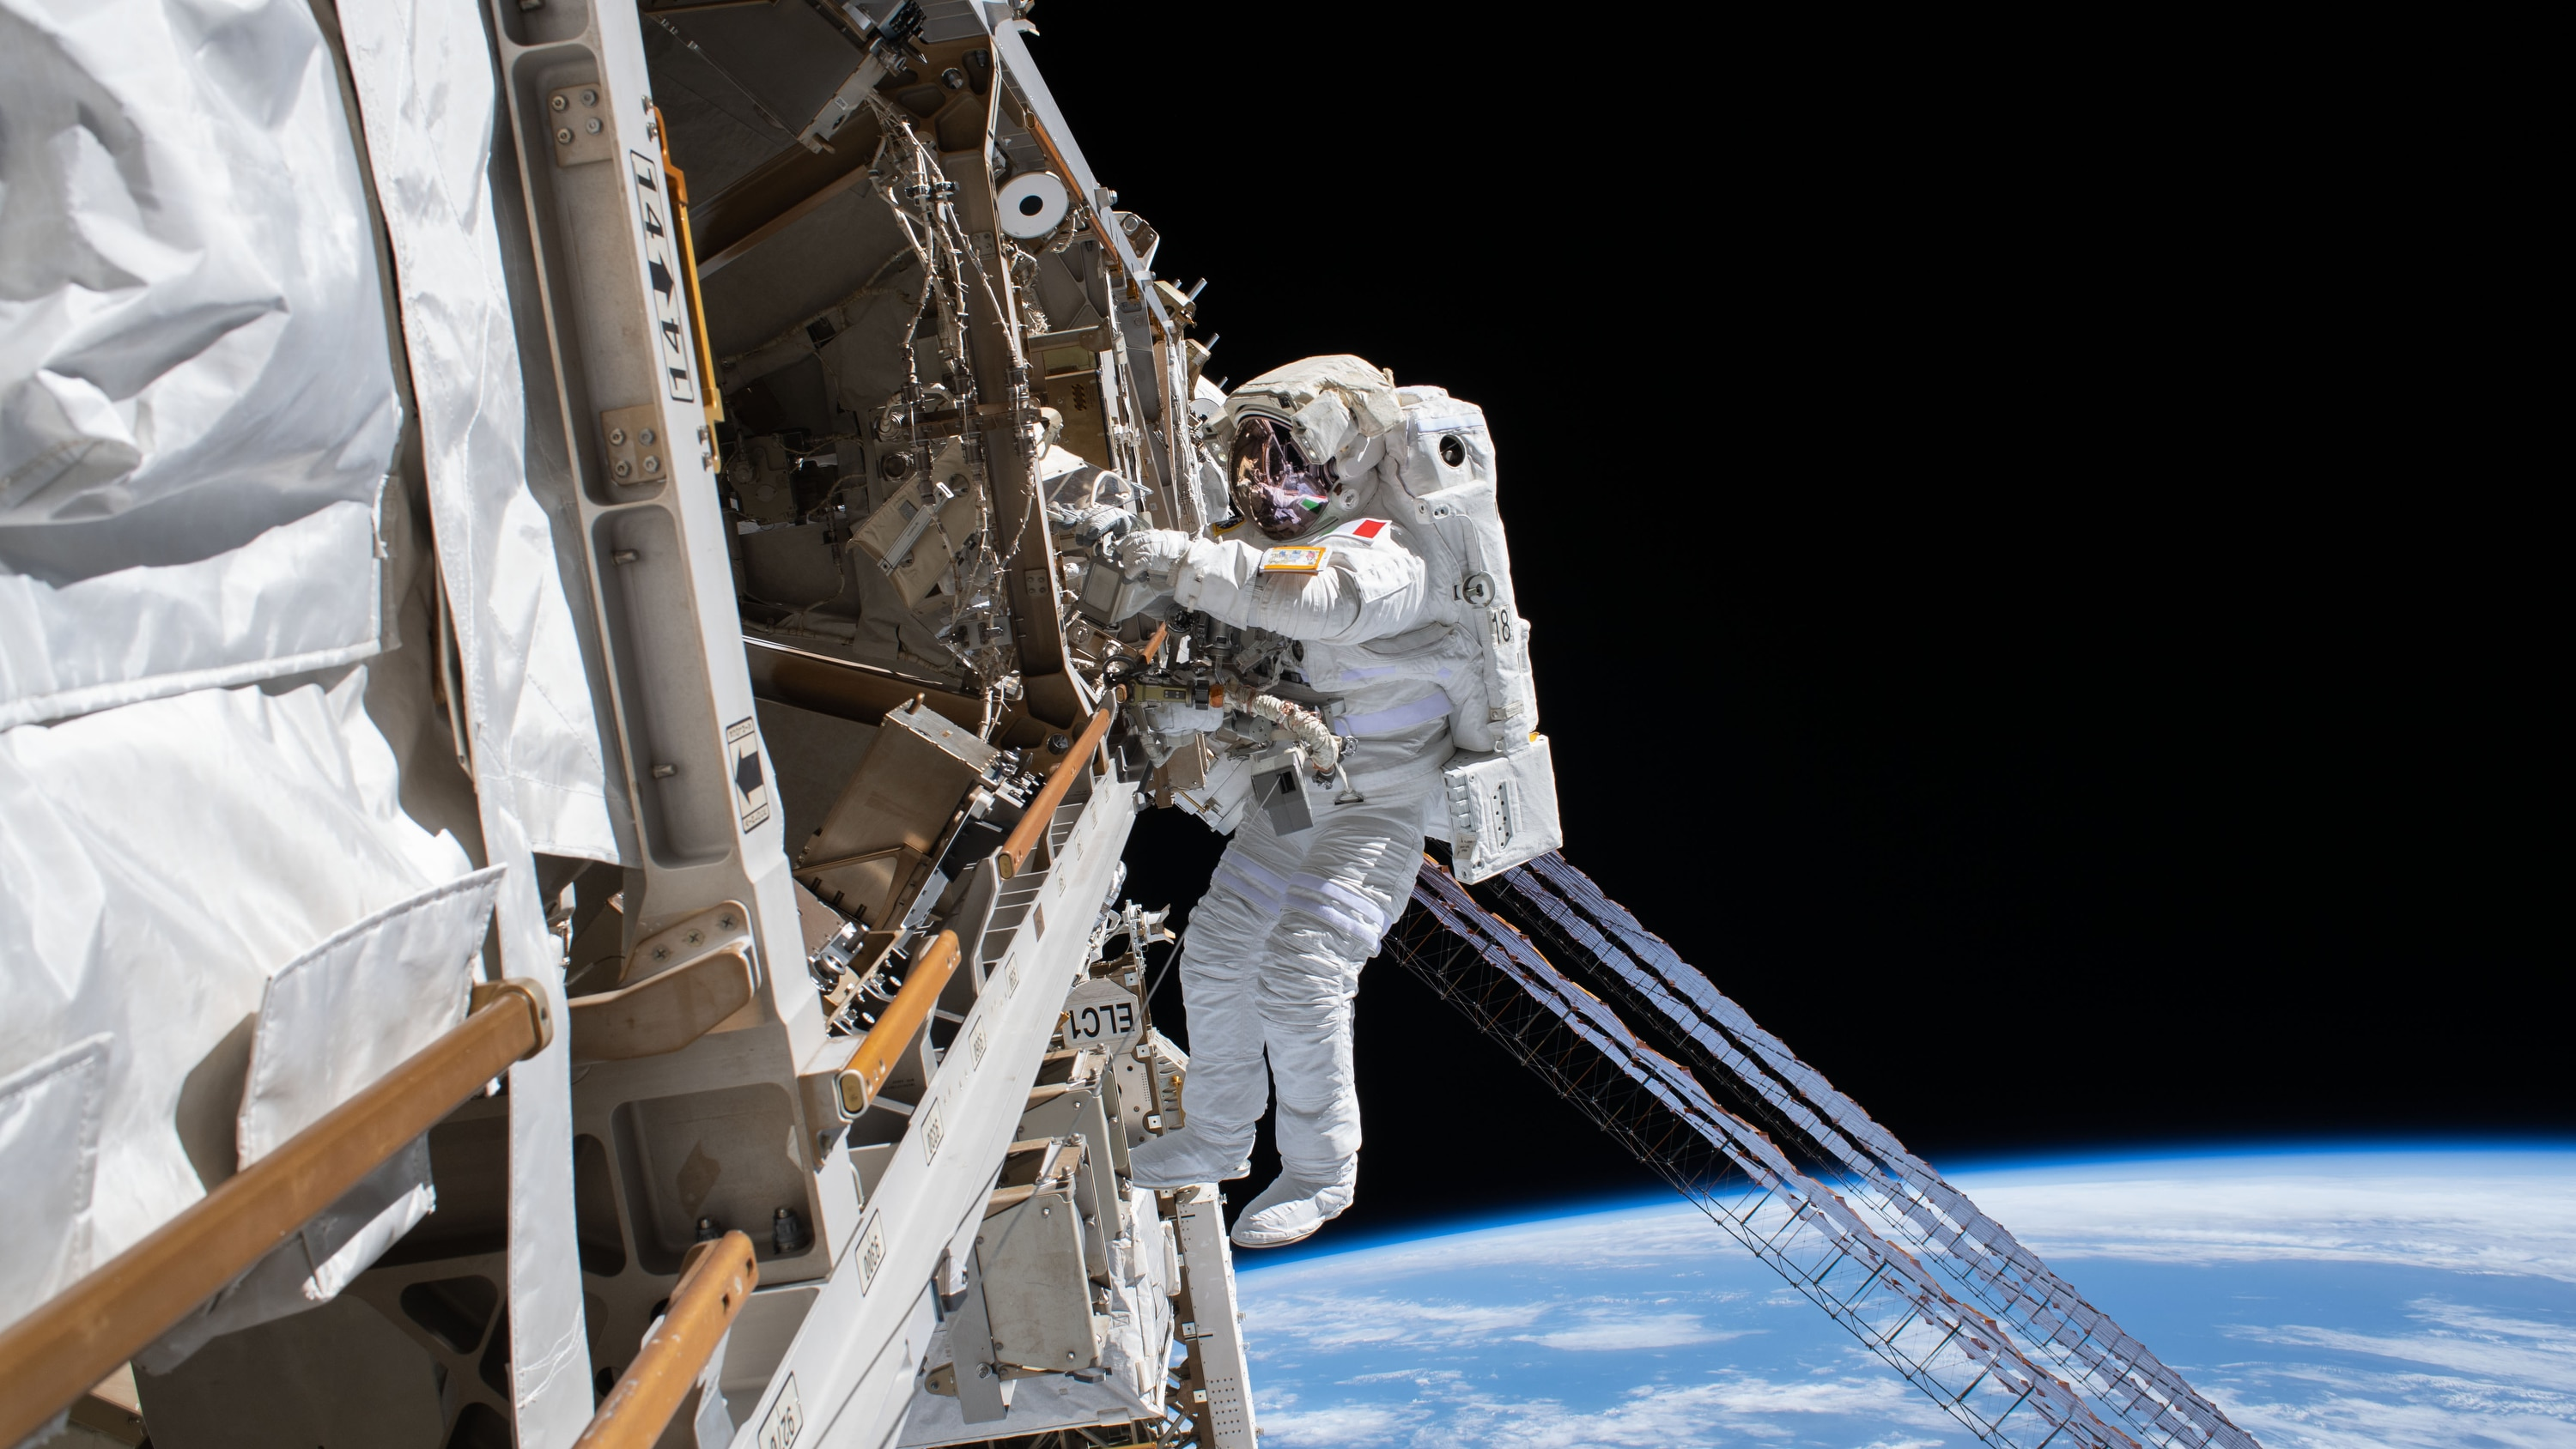 Blasting Off October 6, The Disney+ Original Series 'Among The Stars' Gives Viewers A Rare Look At The Vast World Of NASA